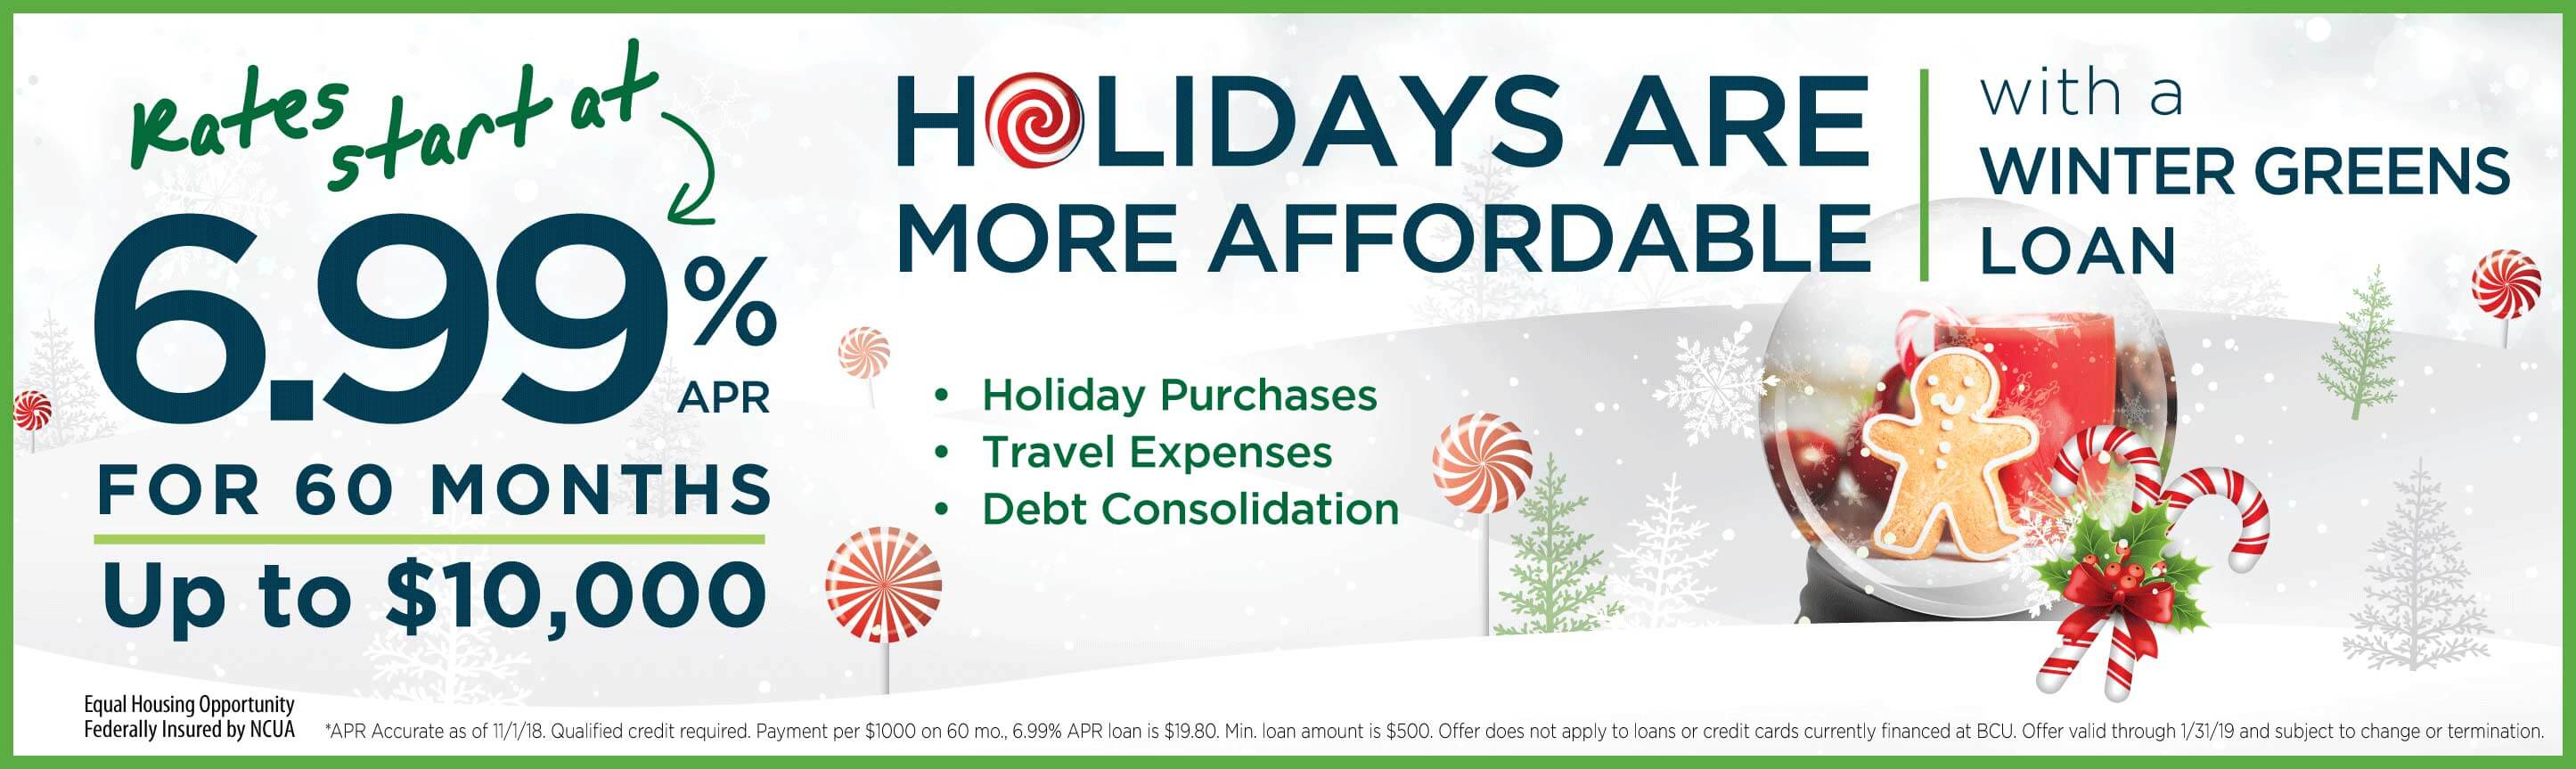 Apply for a Winter Greens Holiday Loan